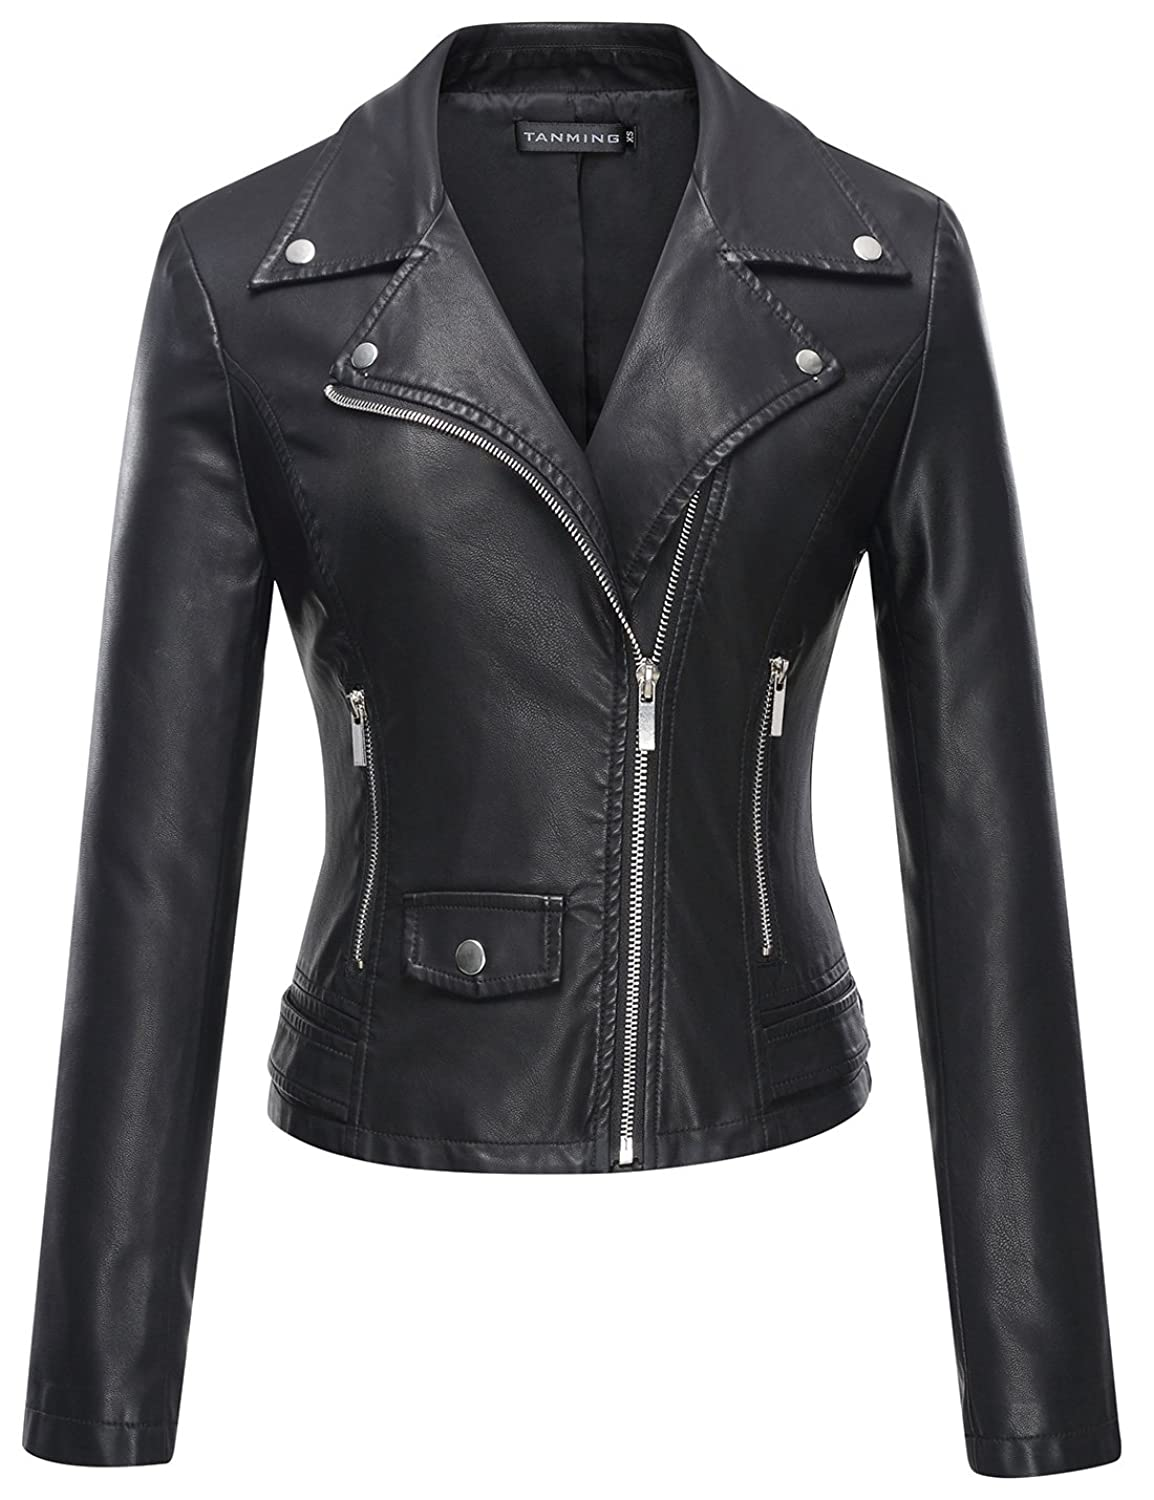 Tanming Women's Faux Leather Moto Biker Short Coat Jacket at ...